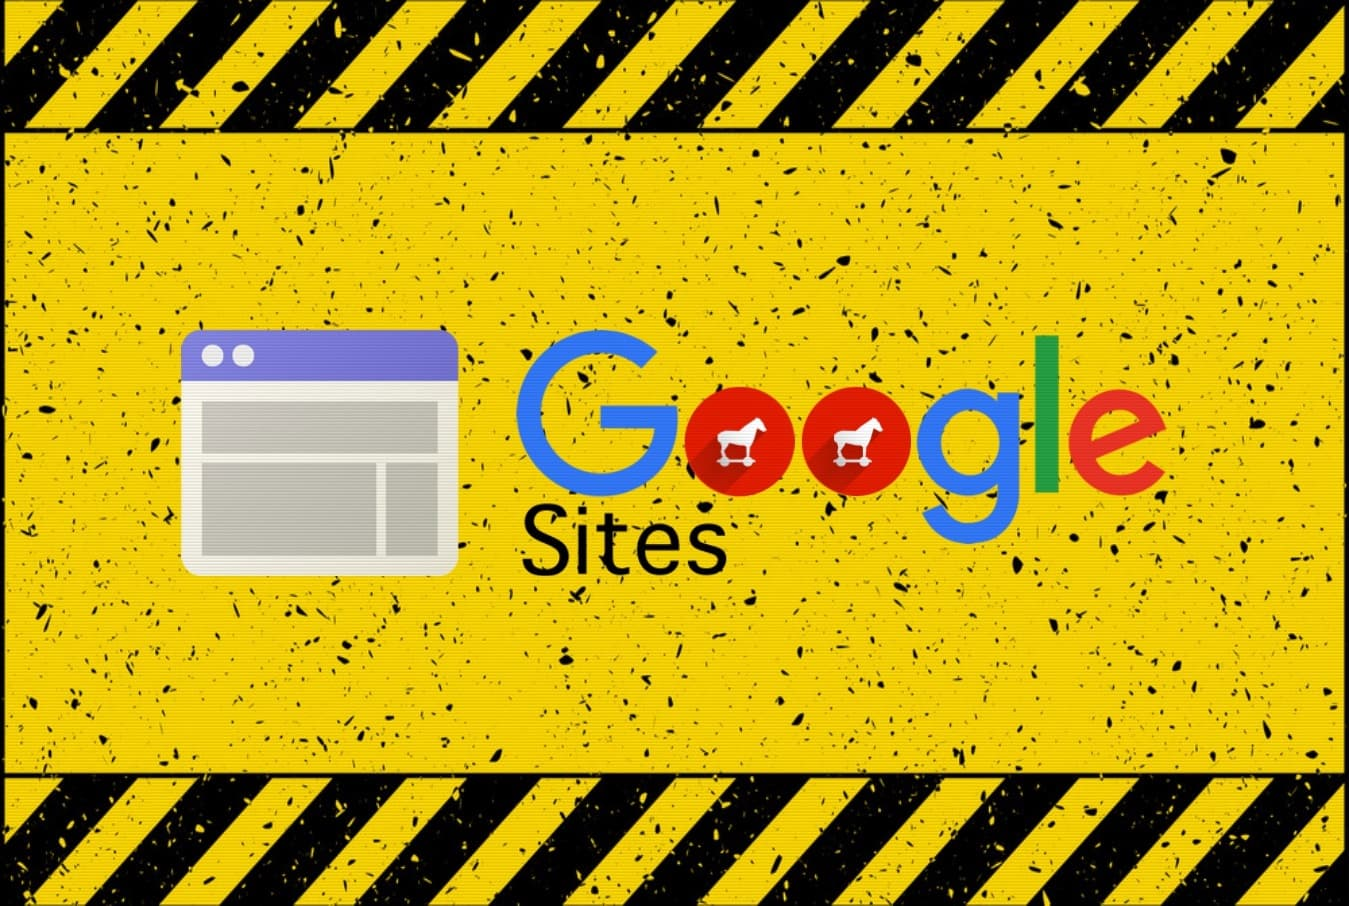 Hackers-using-google-sites-to-spread-banking-malware-3